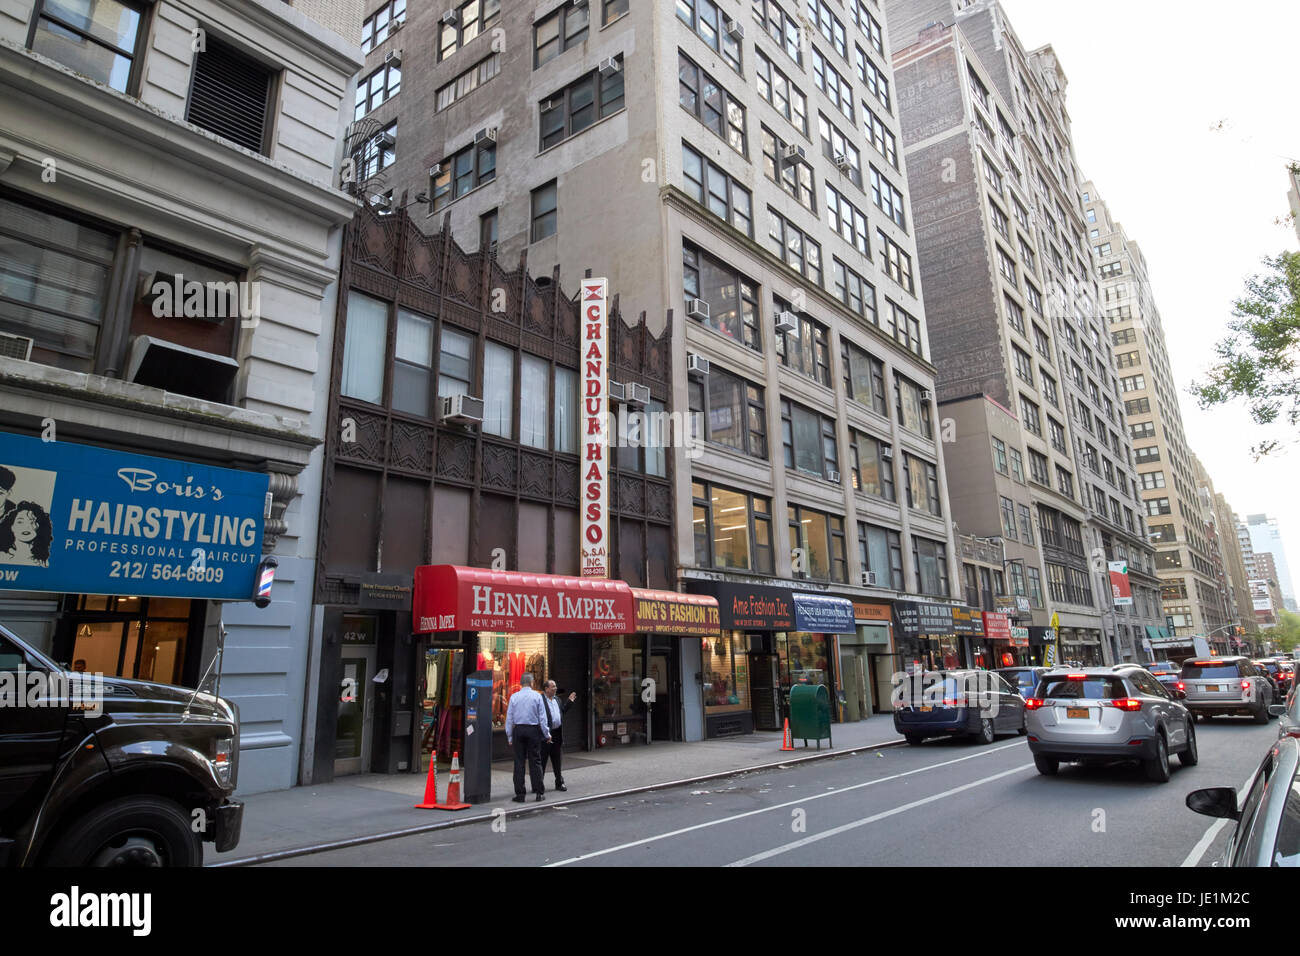 fashion import export wholesale businesses on west 29th street New York City USA - Stock Image